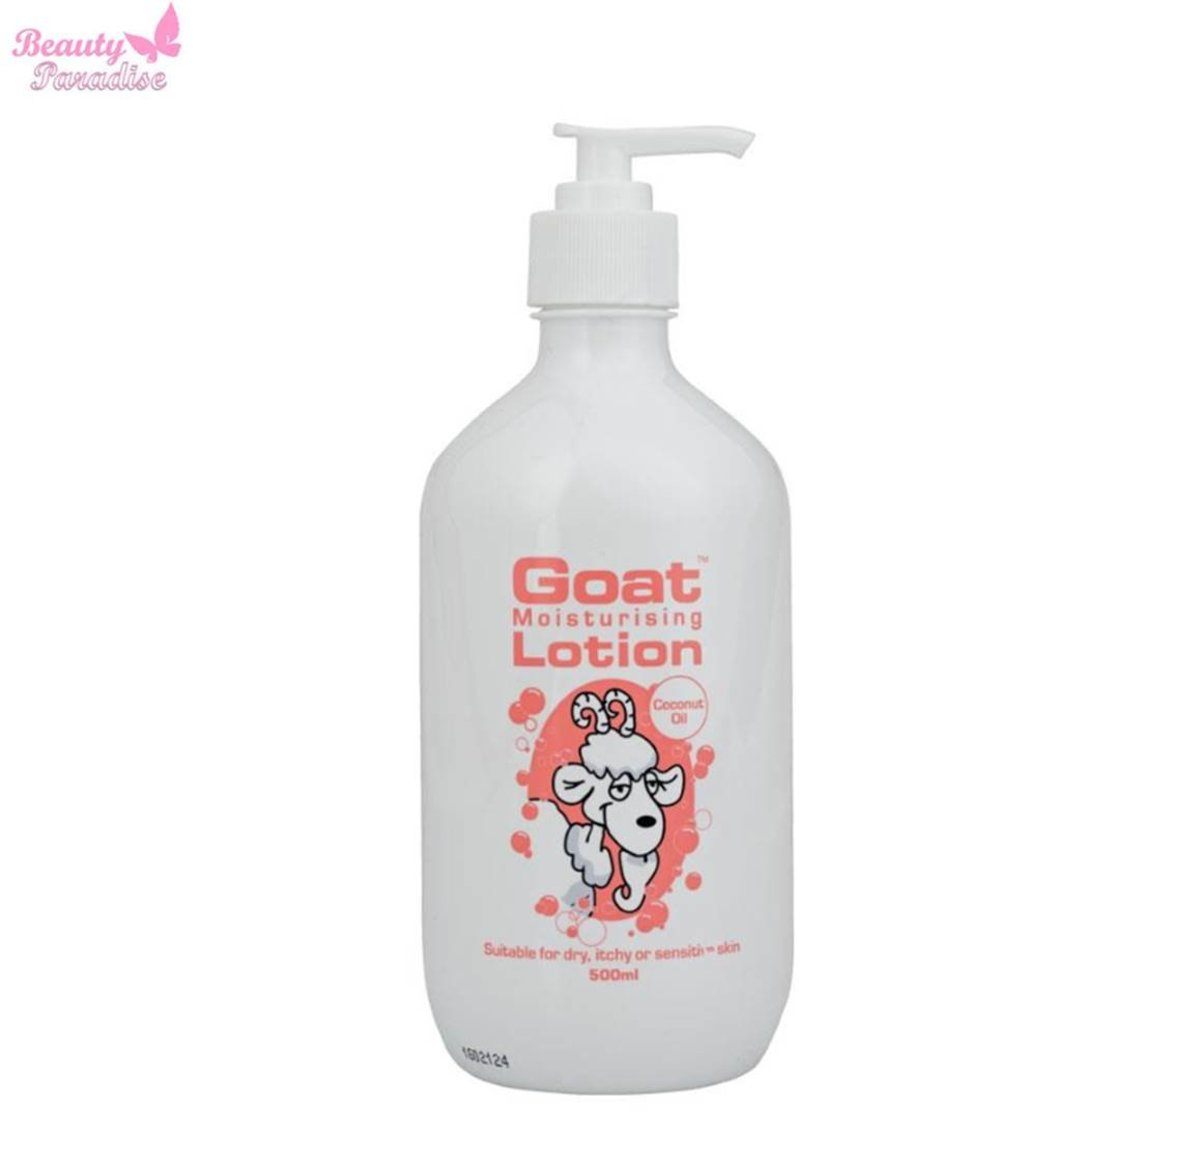 Goat Moisturising Lotion with Coconut Oil 500 ml